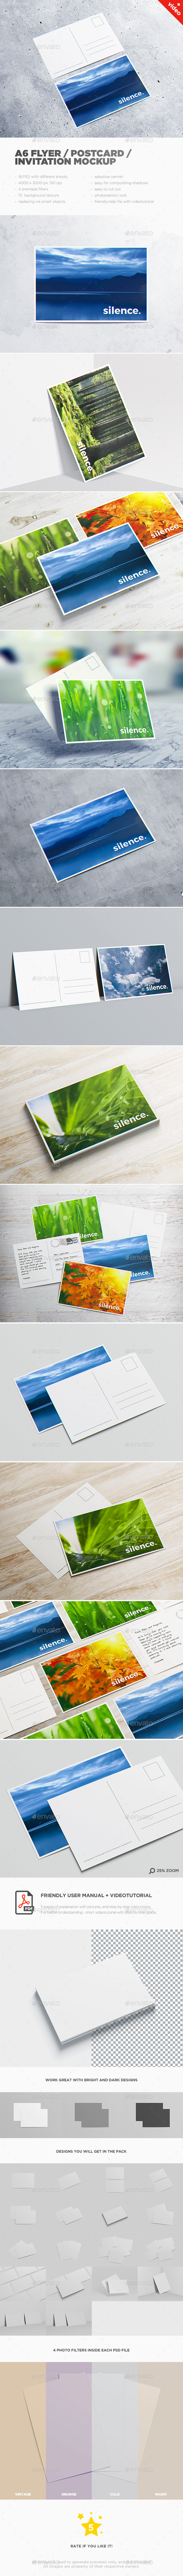 A6 Flyer / Postcard / Invitation MockUp - Miscellaneous Print